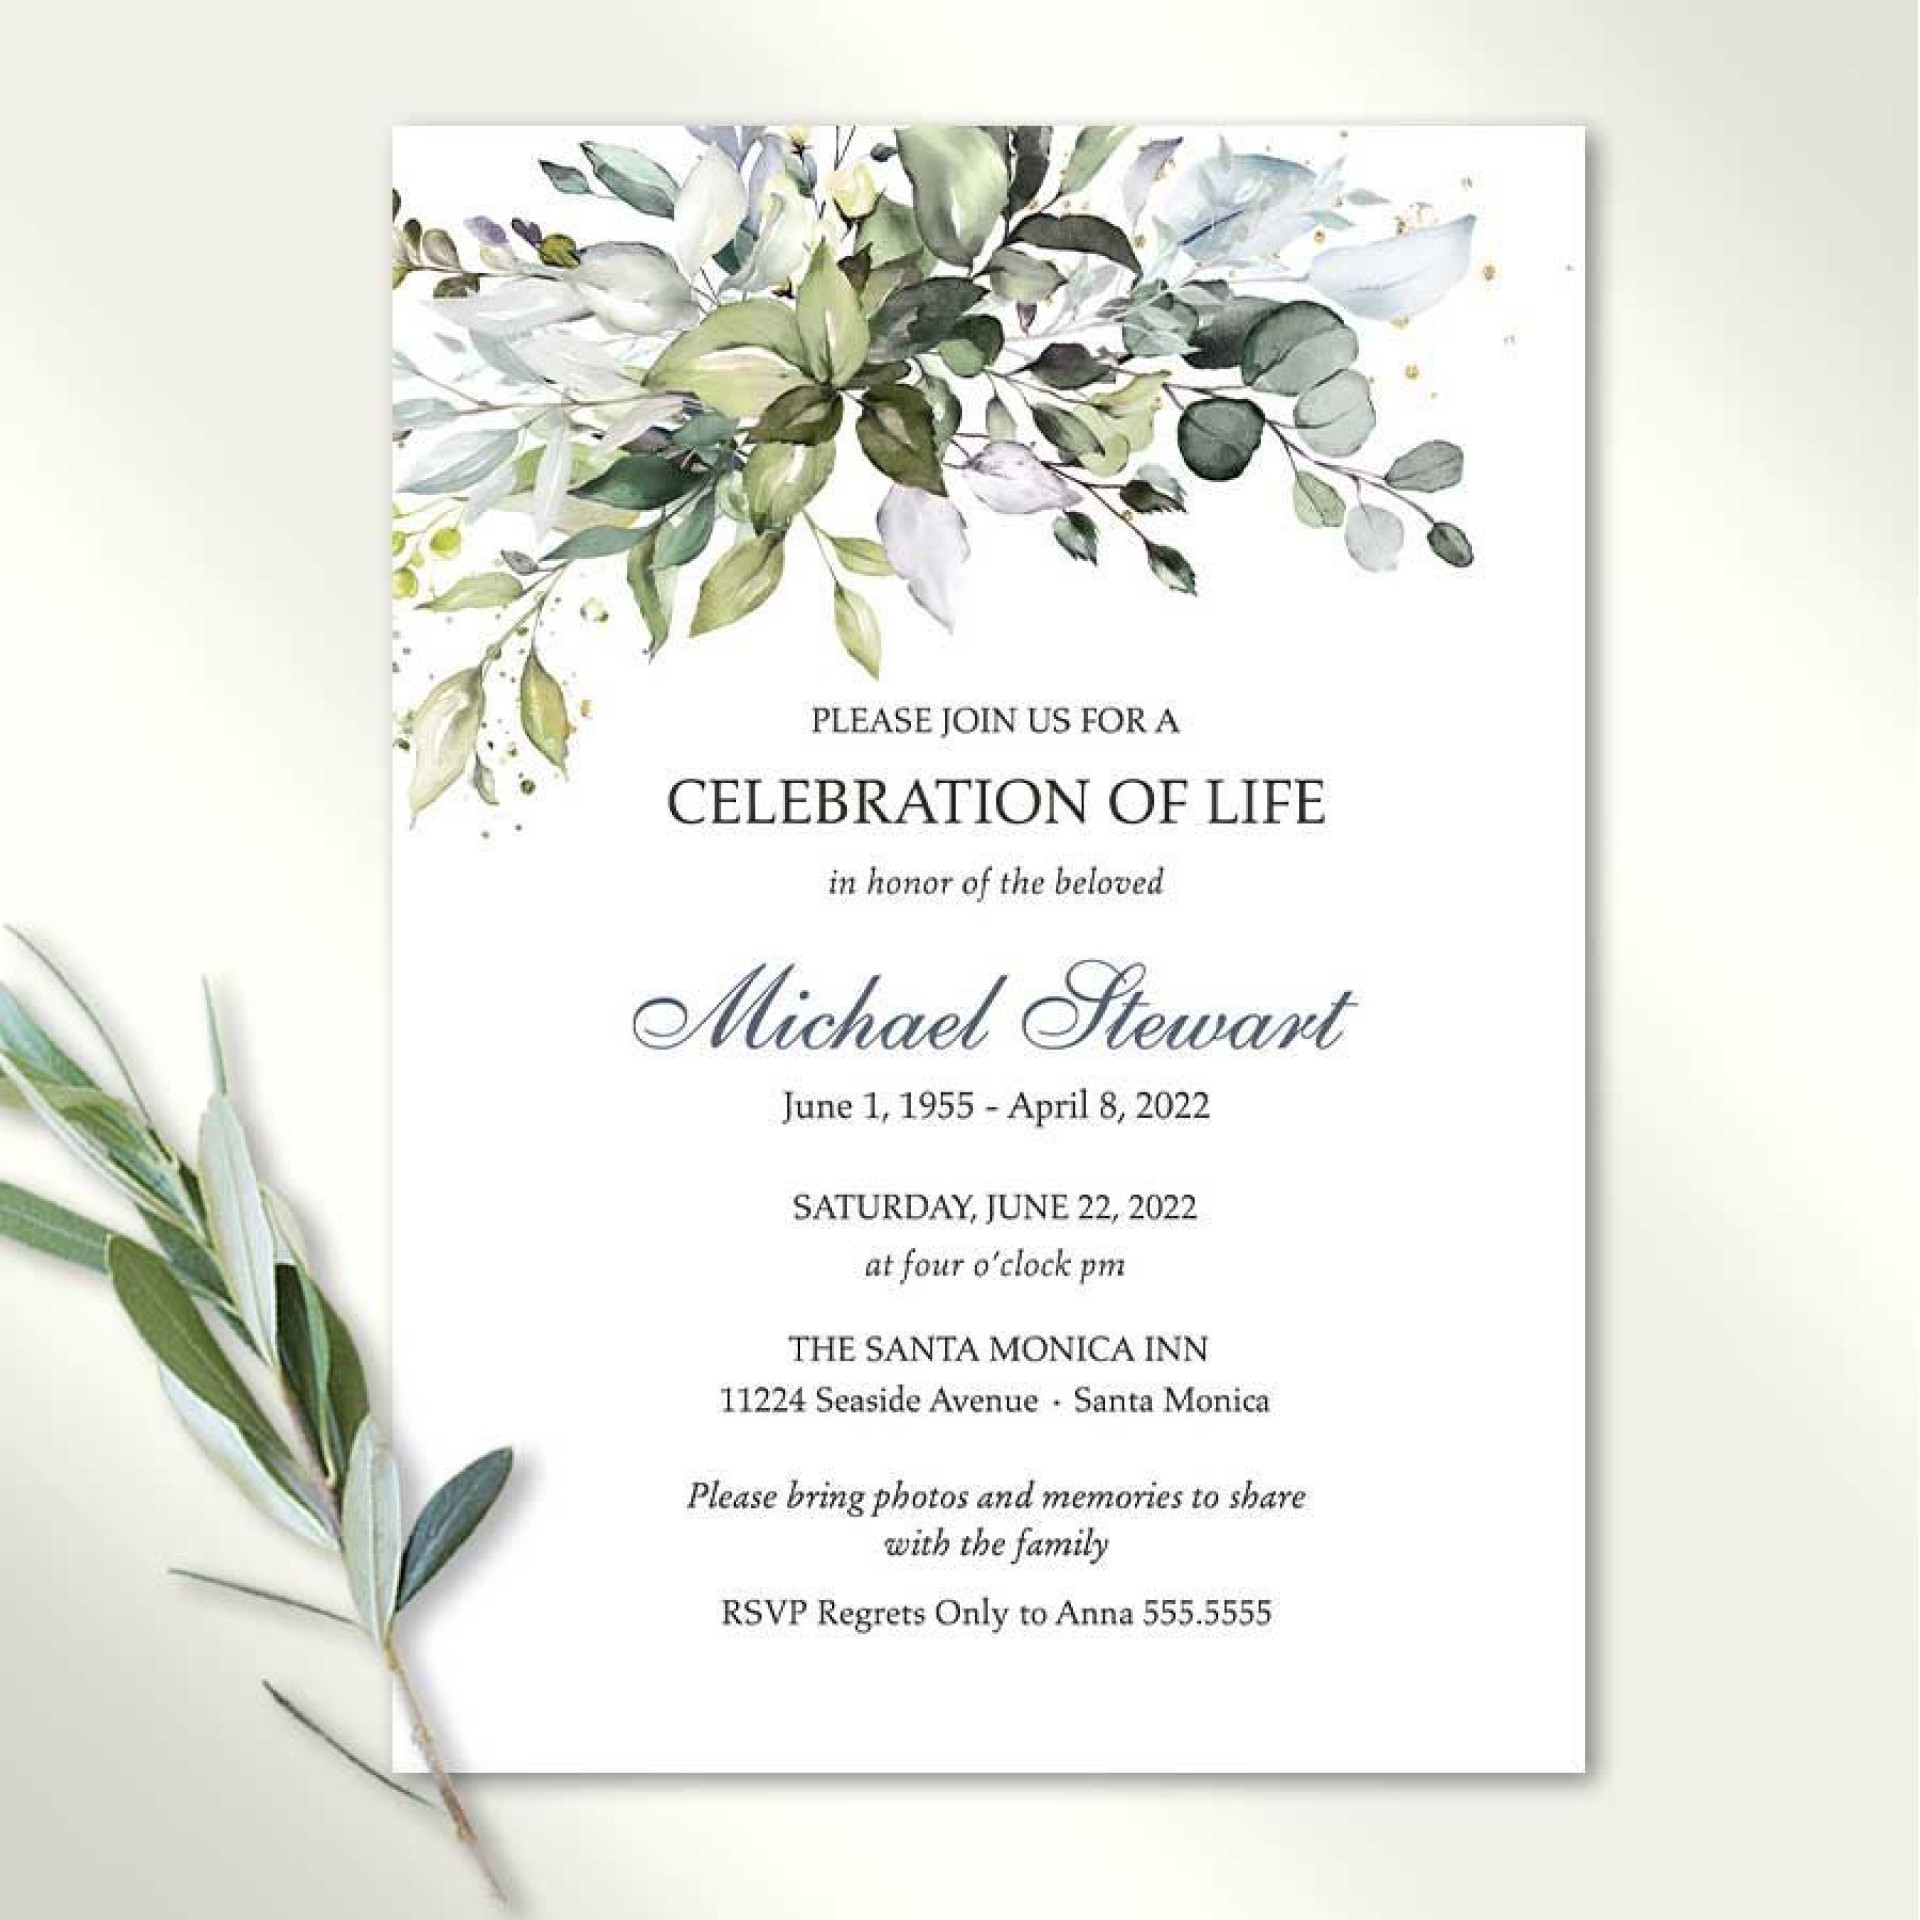 005 Rare Celebration Of Life Invite Template Free Design  Invitation Download1920